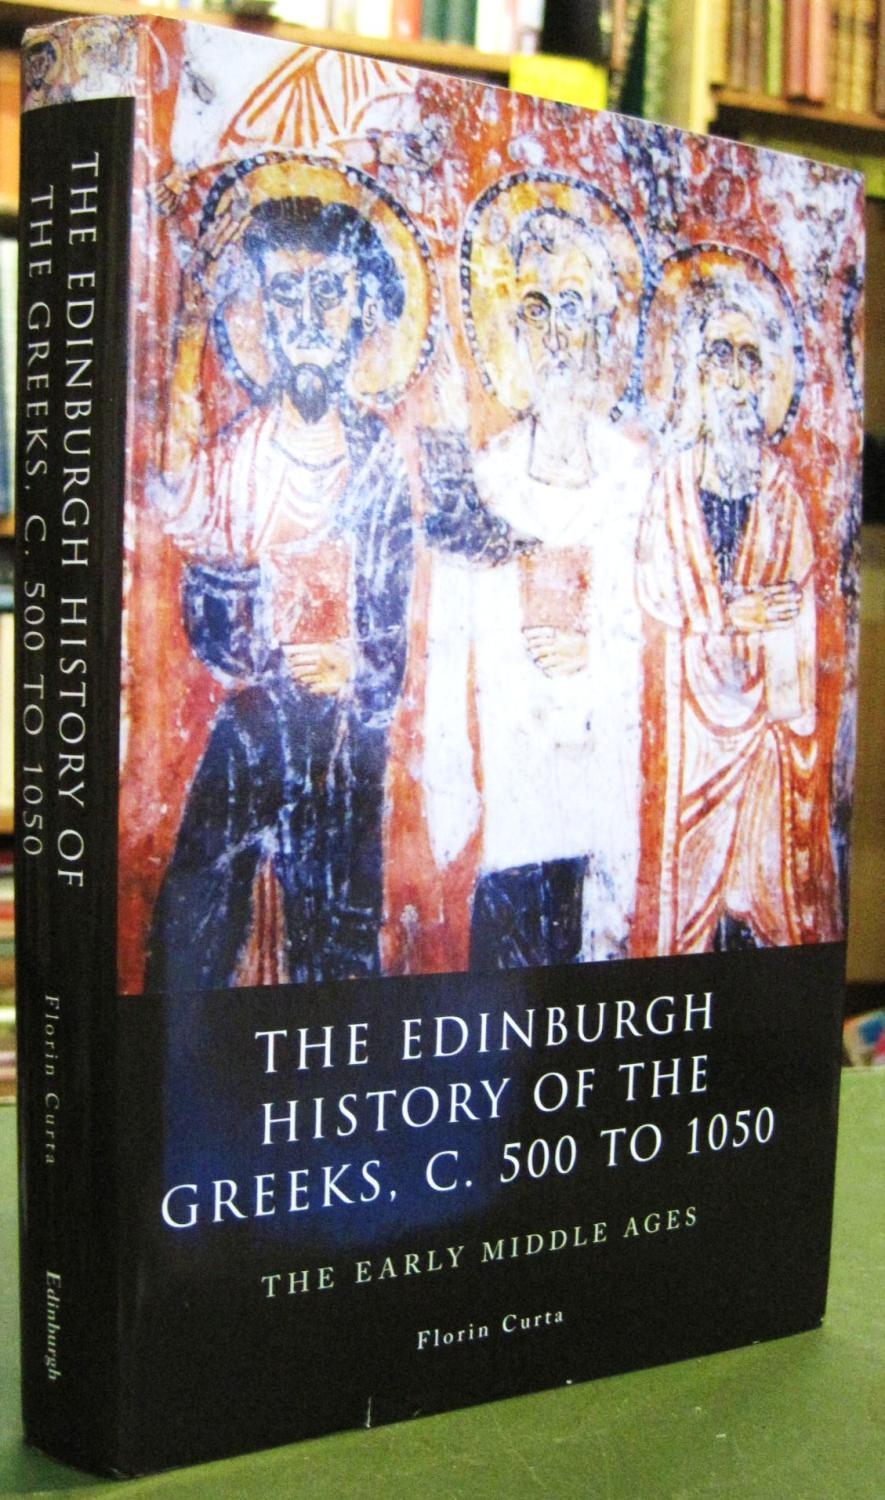 The Edinburgh History of the Greeks, C. 500 to 1050: The Early Middle Ages - Curta, Florin